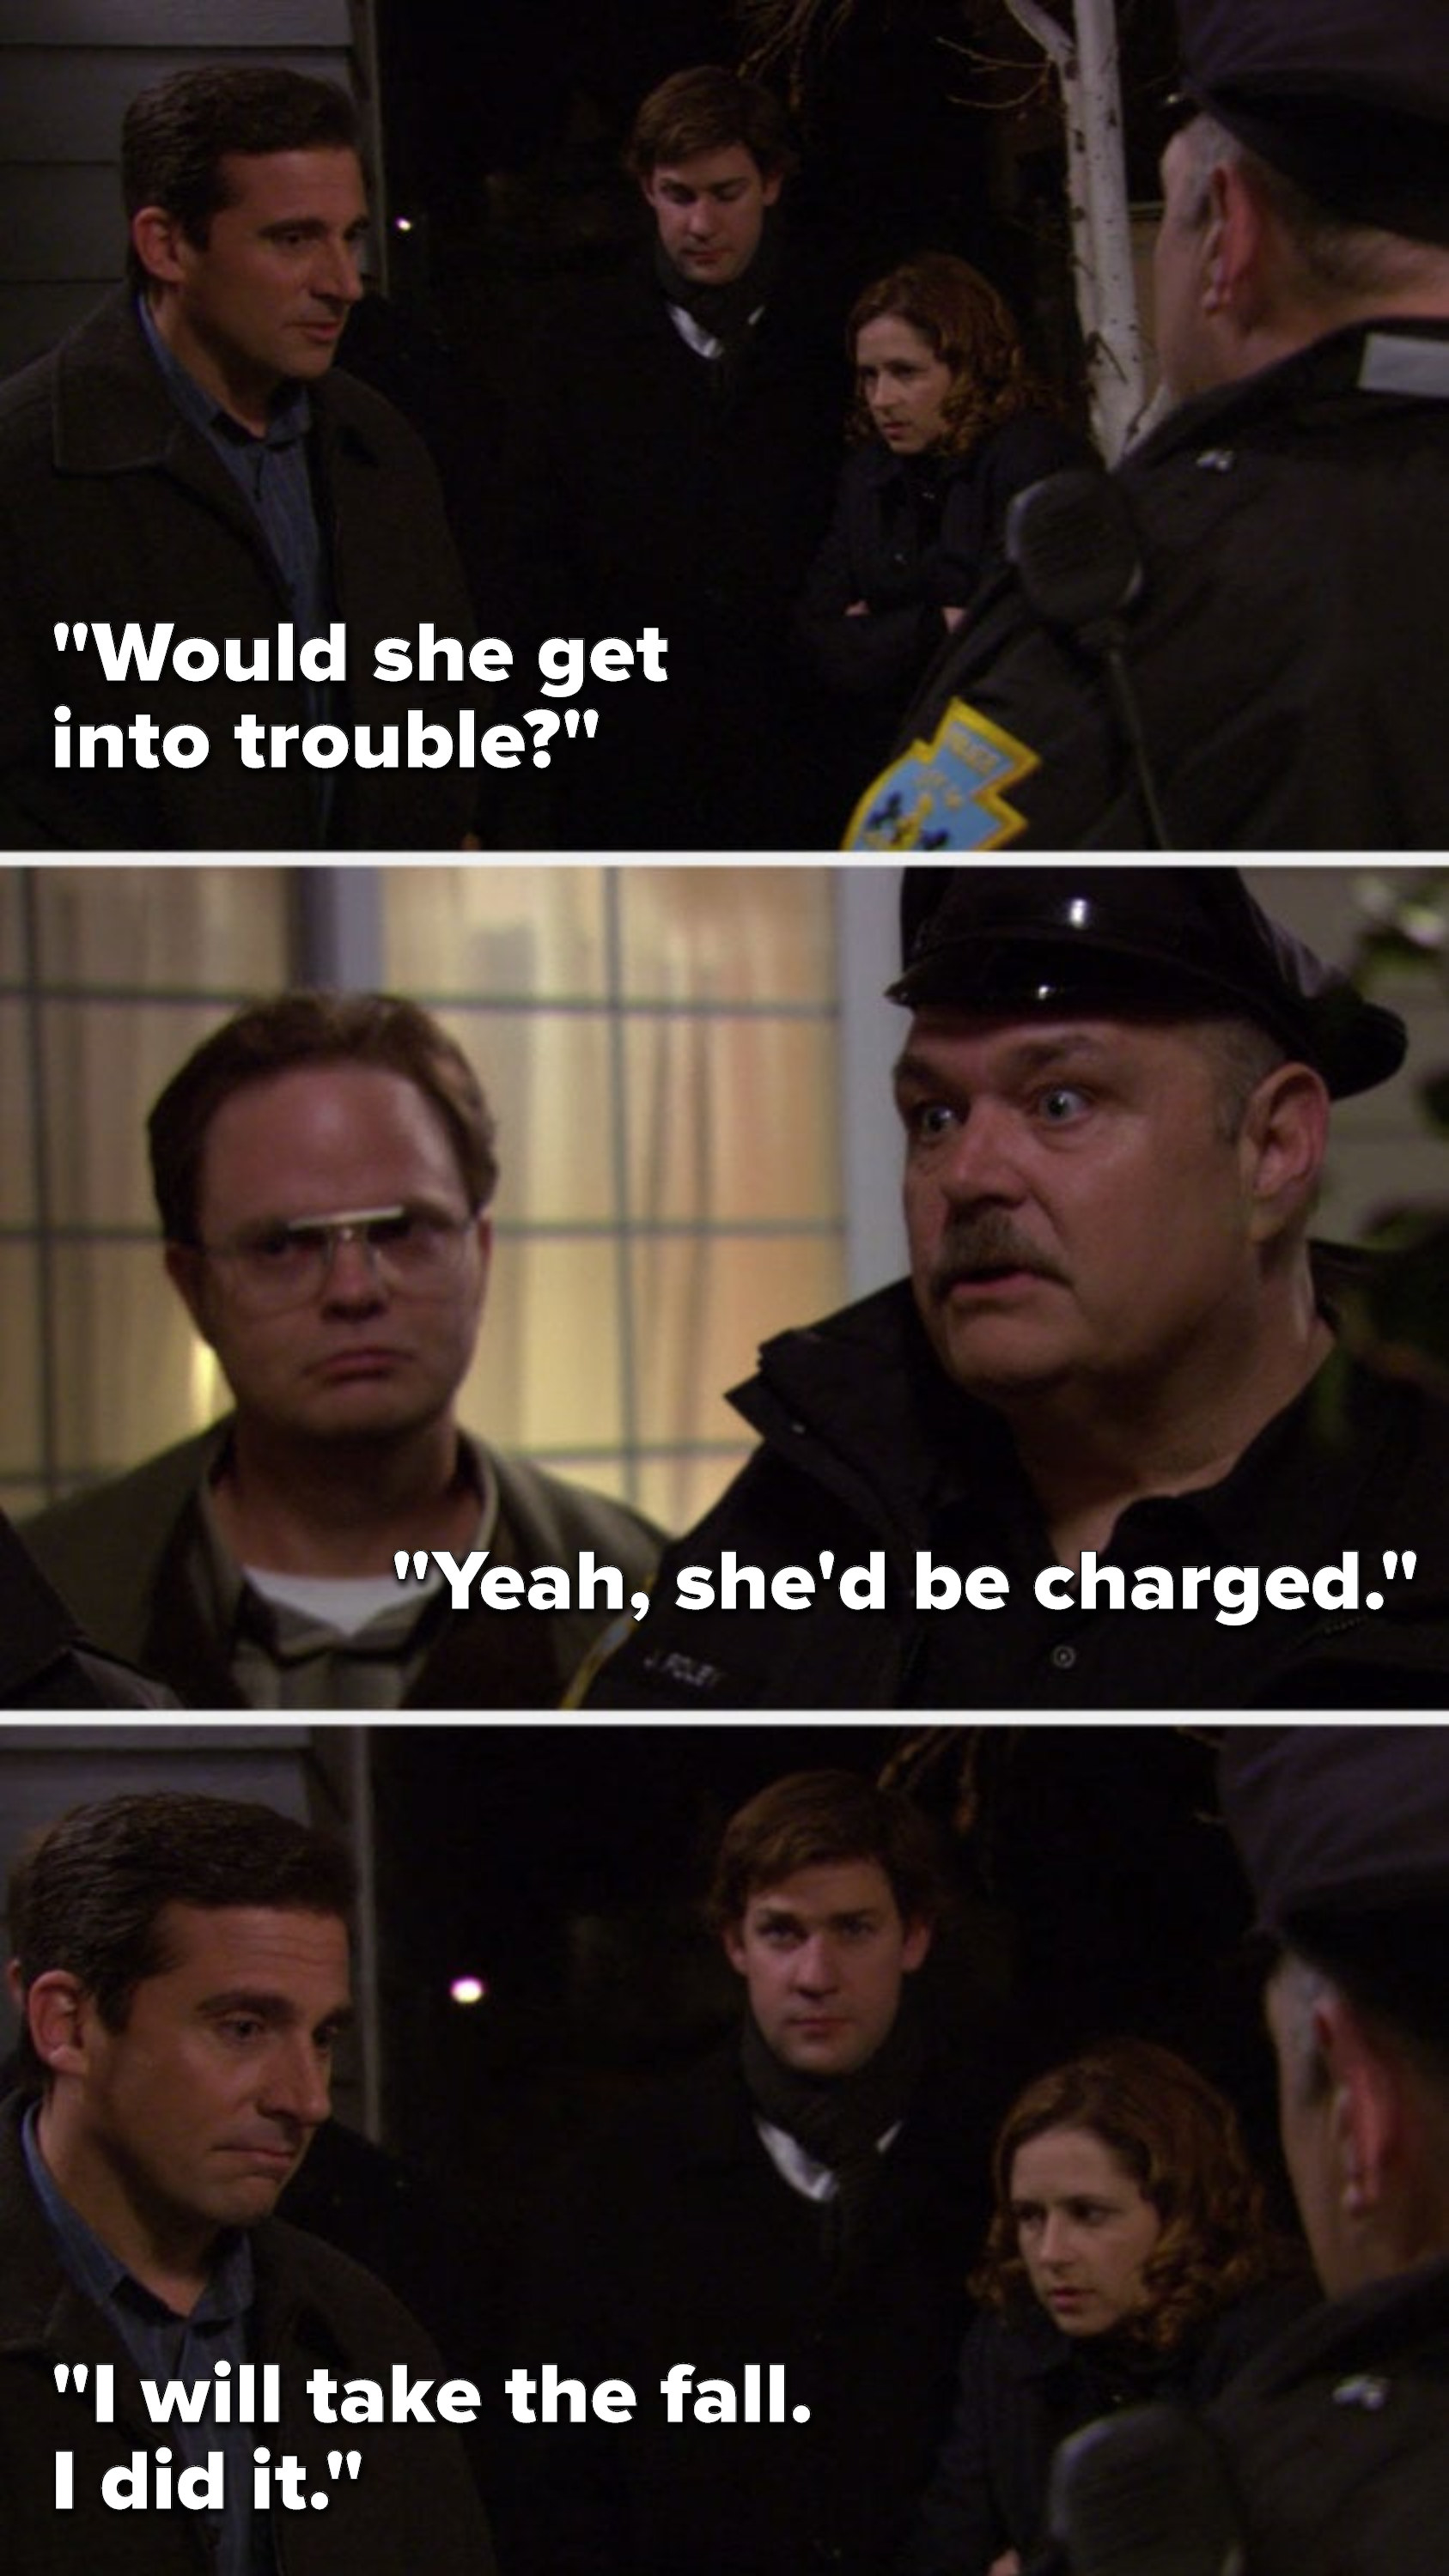 Michael asks the police Would she get in trouble, the officer says, Yeah, she'd be charged, and Michael says, I will take the fall, I did it